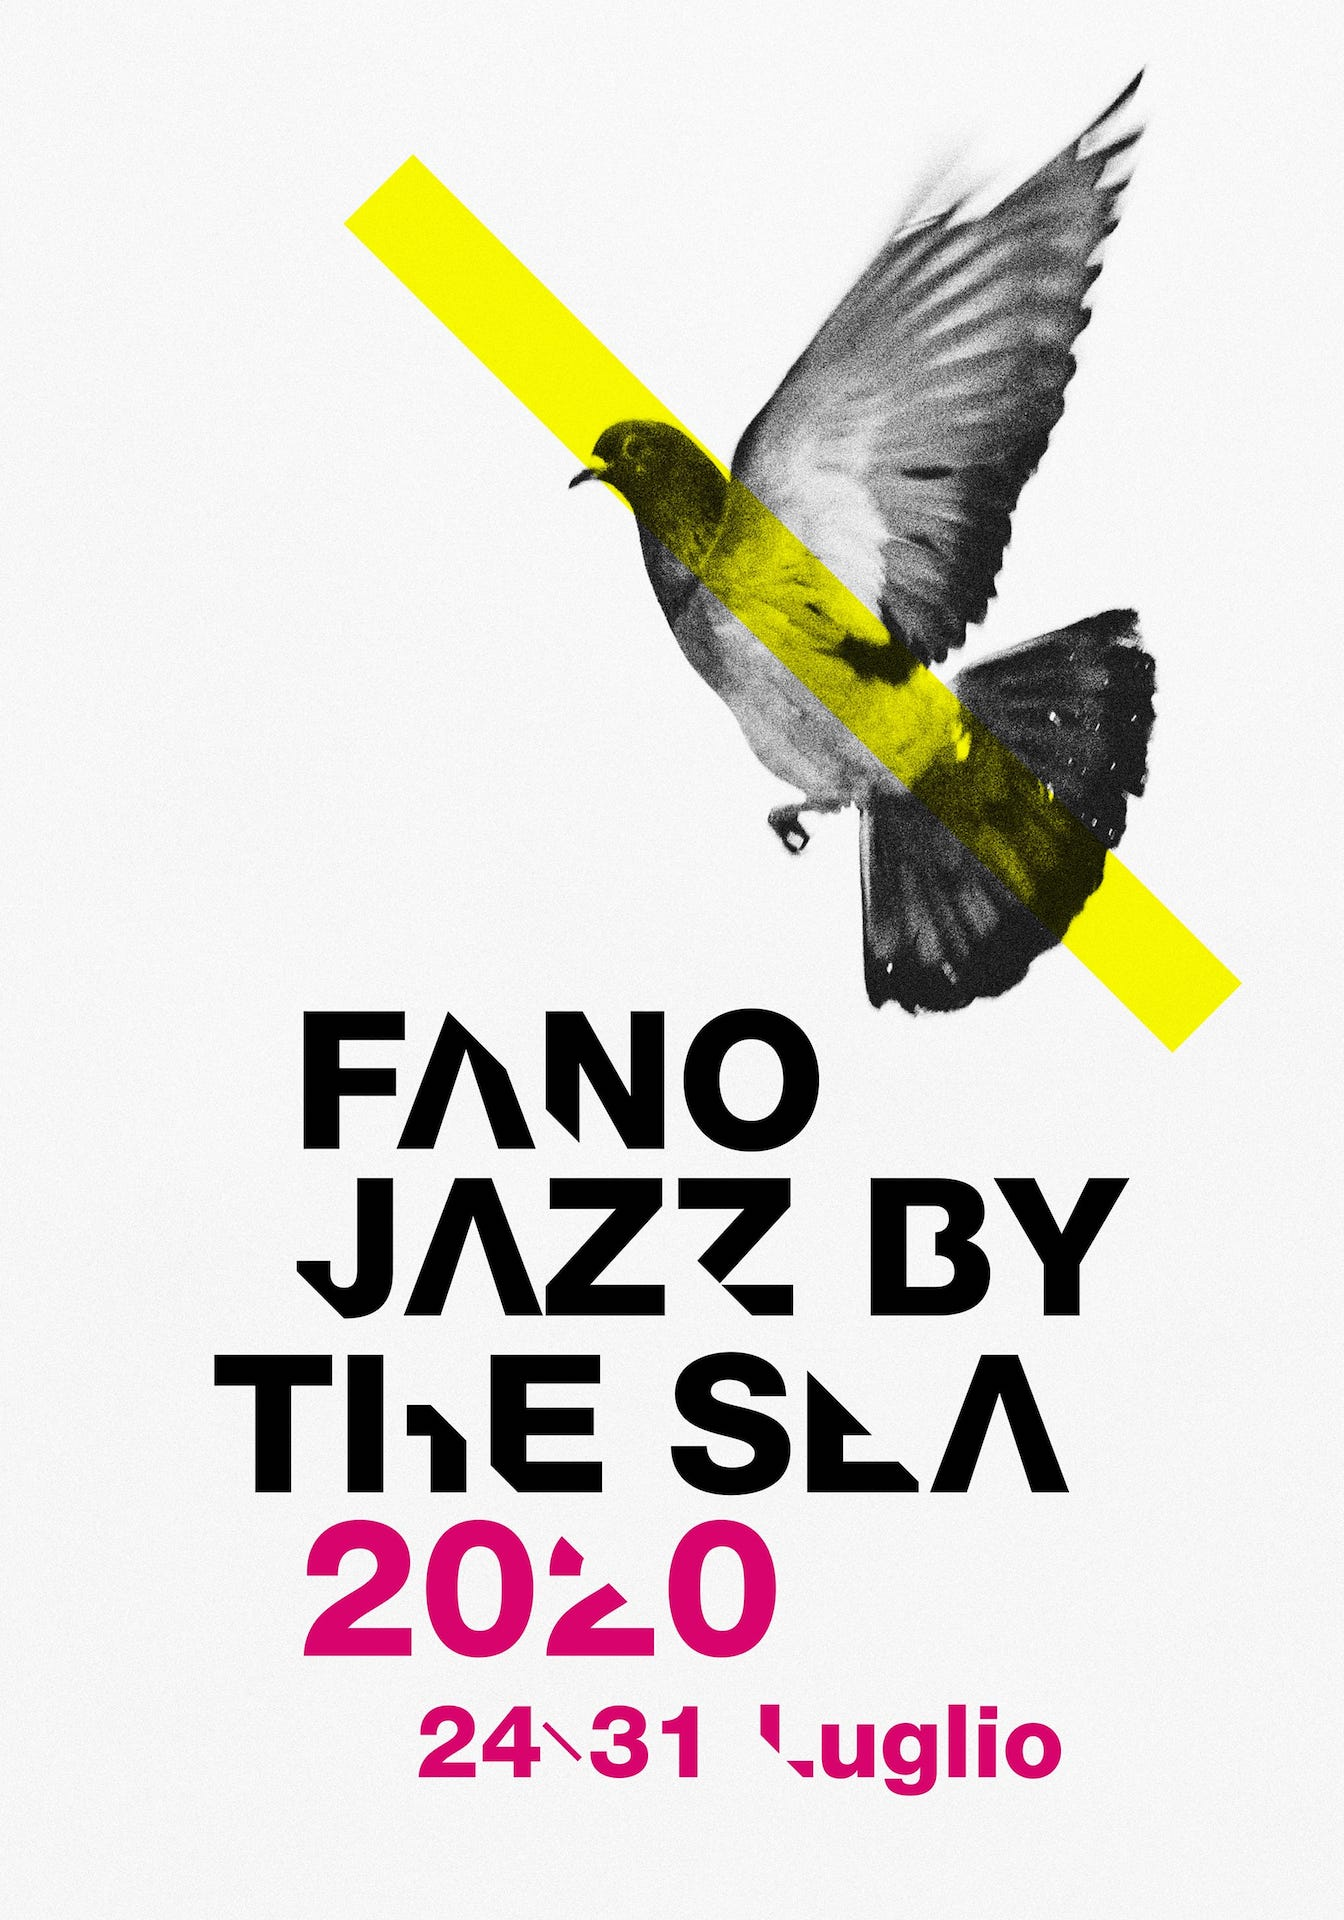 Fano-jazz-by-the-sea-2020-italy